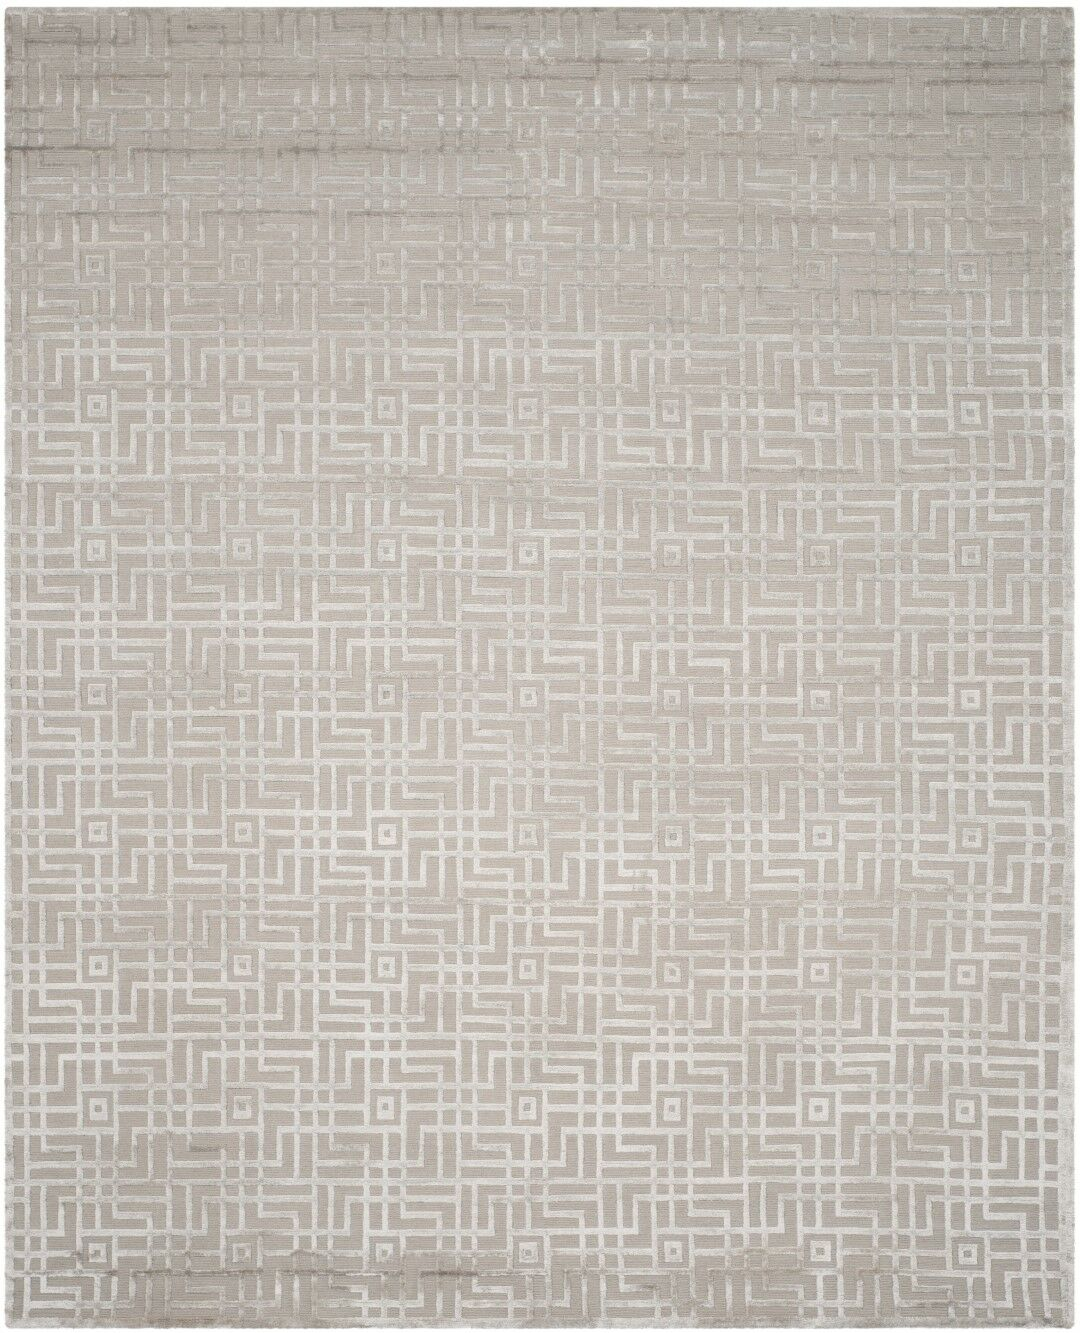 Ocellus Hand-Knotted Gray Area Rug Rug Size: Rectangle 6' x 9'